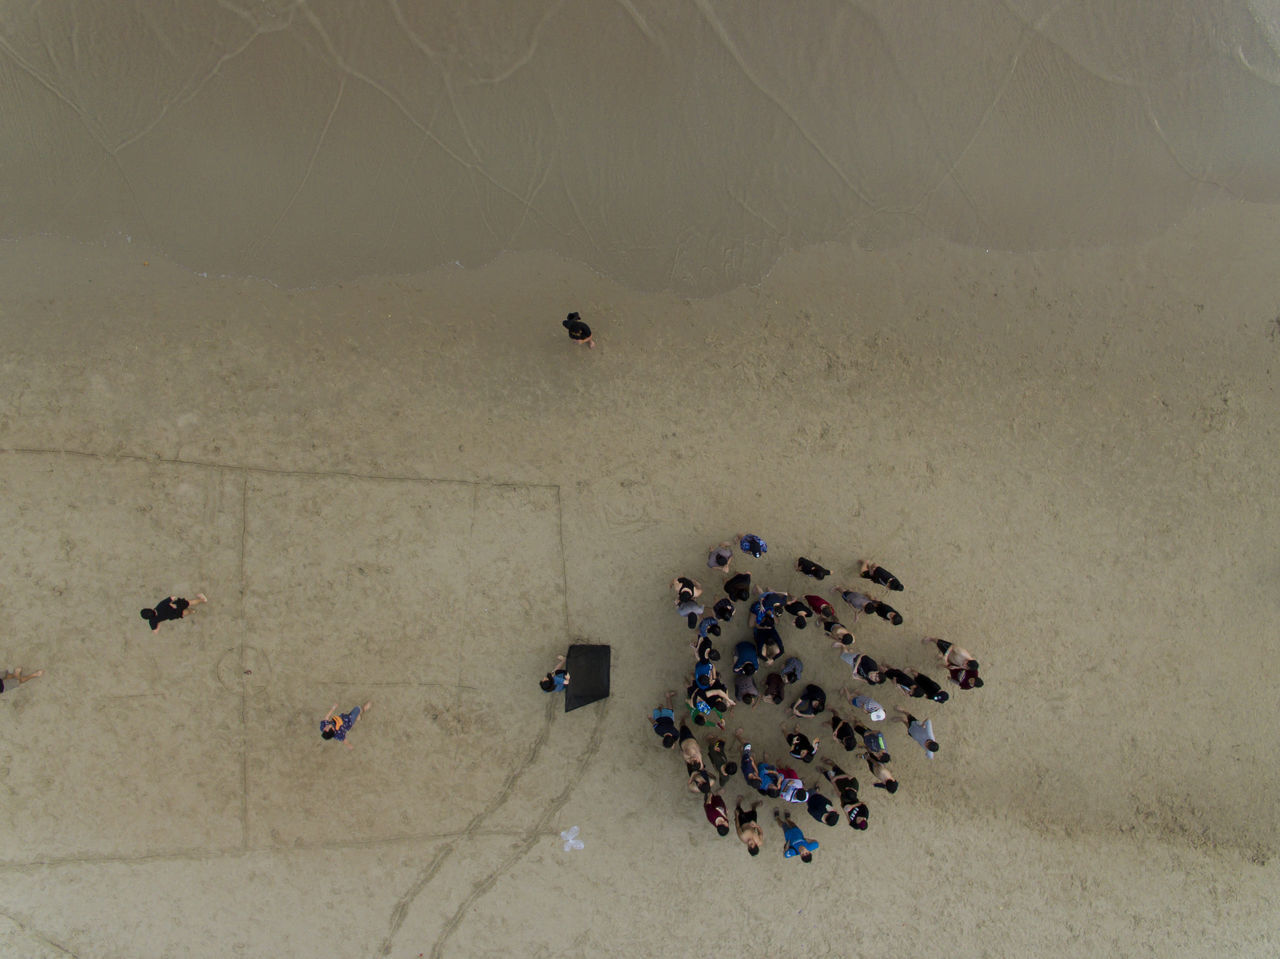 Group of people on the beach top view from drone Beach Sand Nature Below Looking Down From Above Looking Down Looking From Above Daily Life Tourism Friends People Group Of People Seaside Drone View Flying High